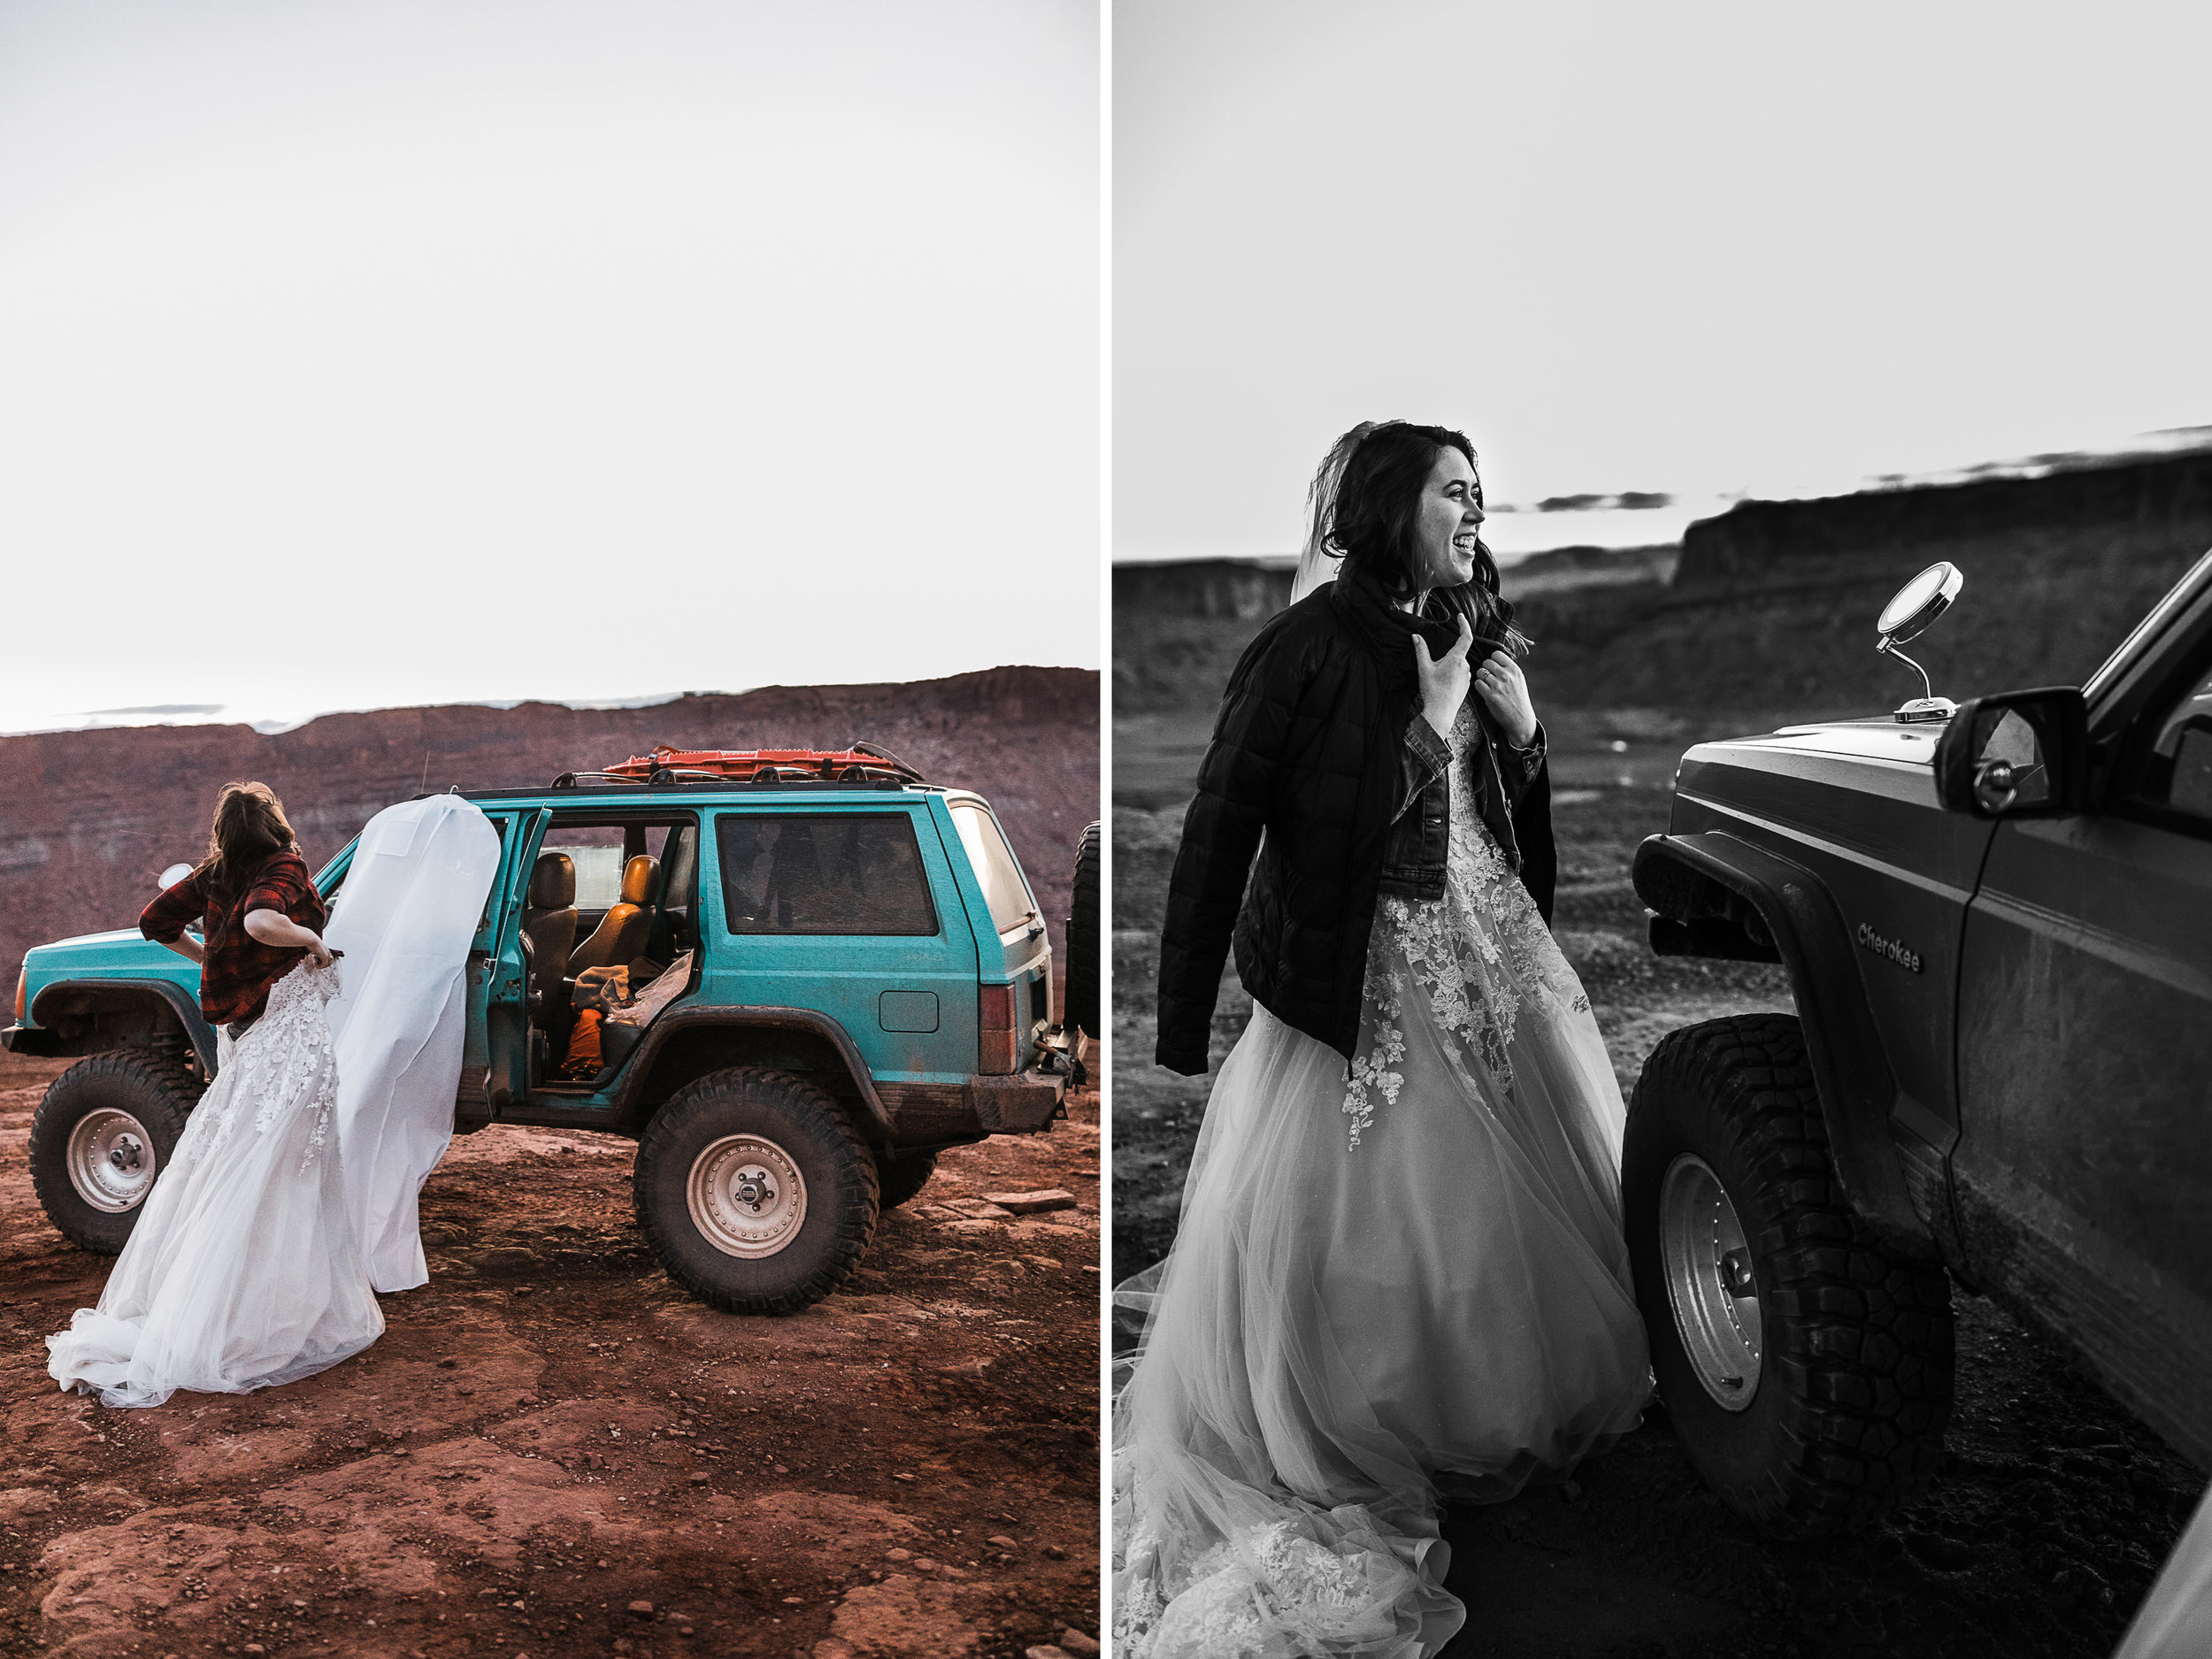 Bride and groom opt for adventurous jeep elopement in Utah's Moab desert.